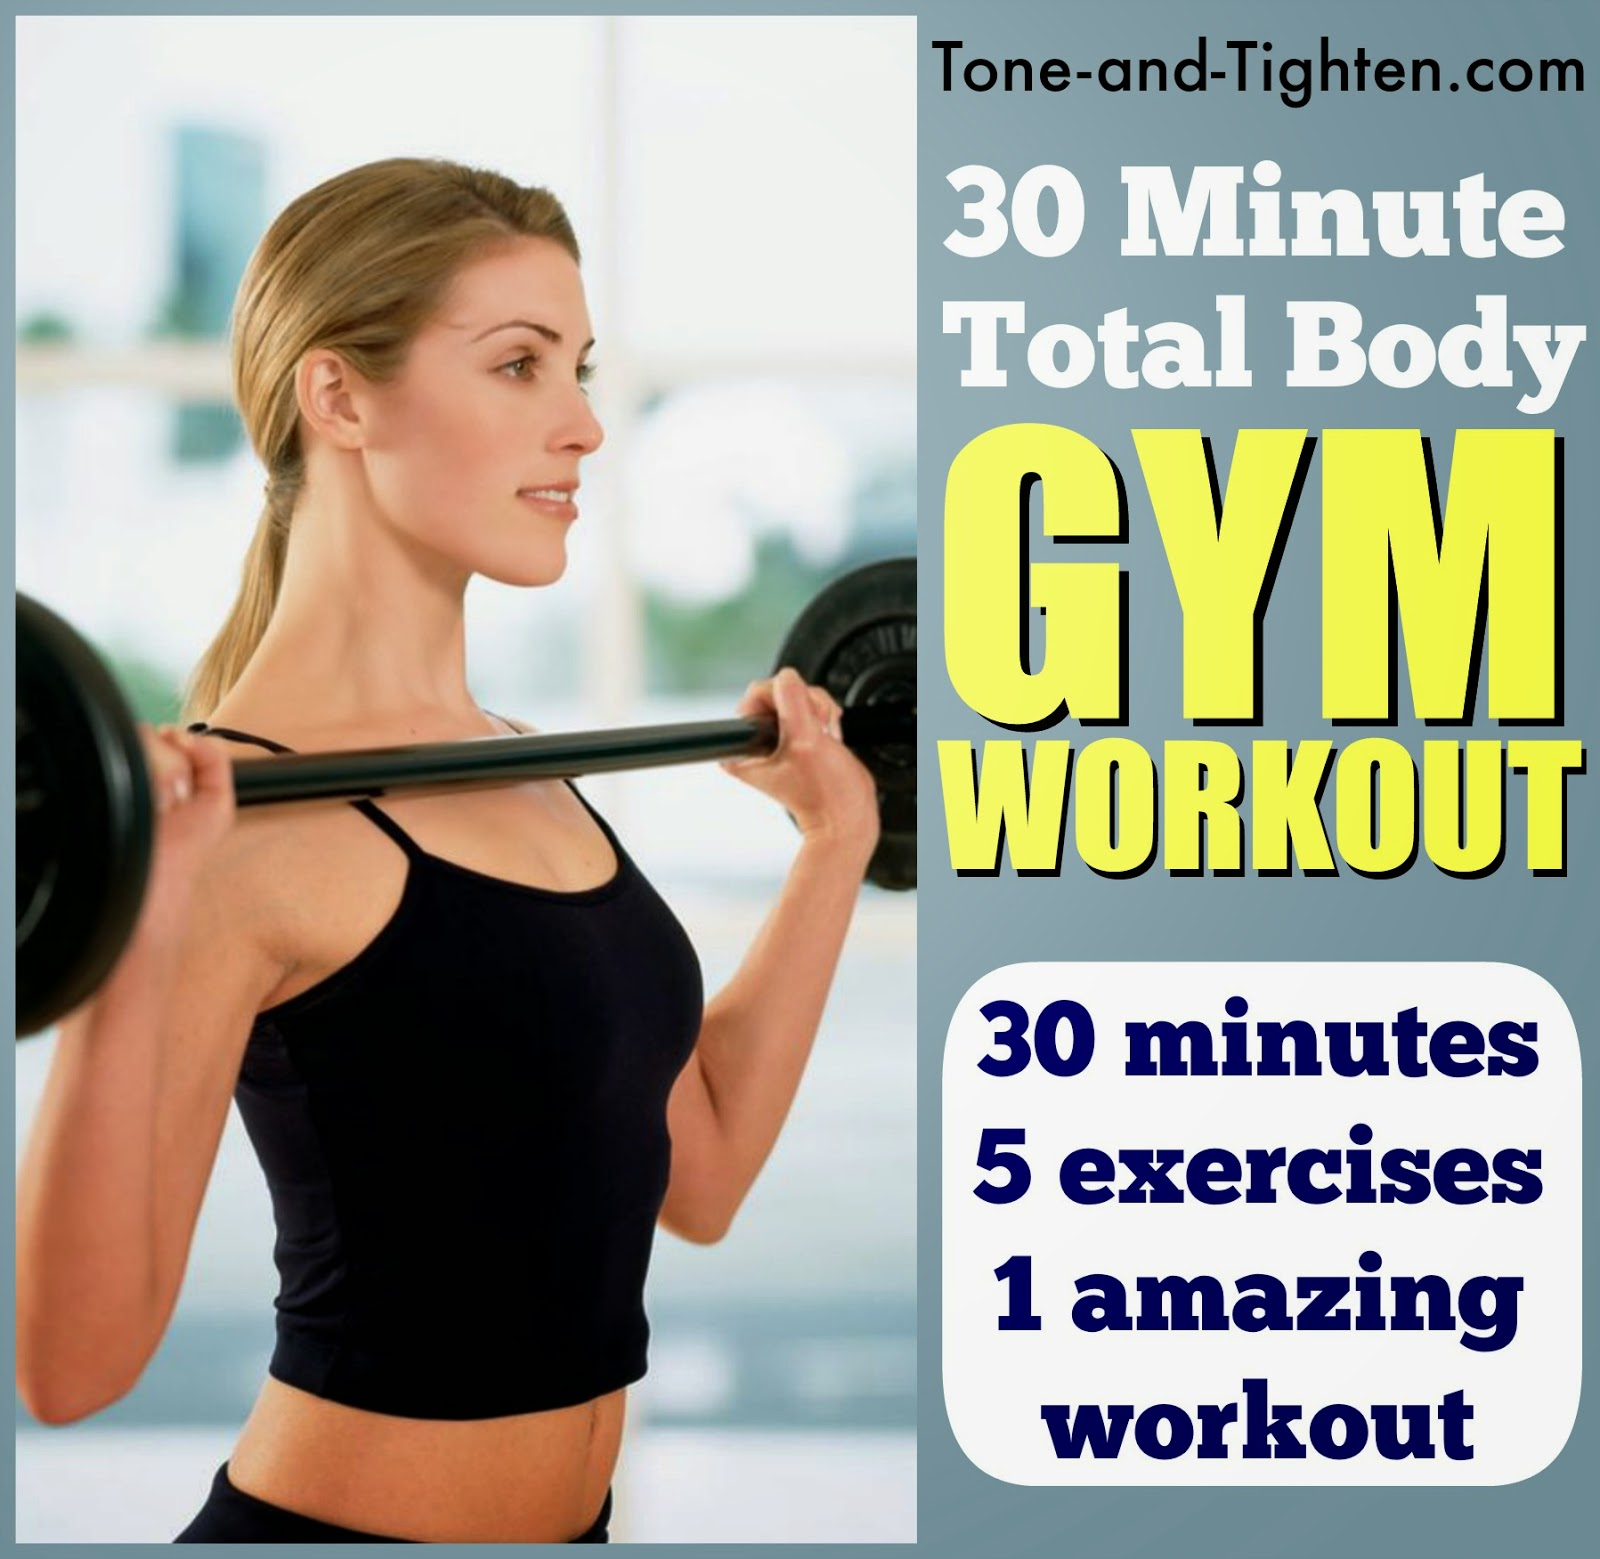 Best Workout: Best-quick-total-body-gym-workout-exercise-30-minute-burn